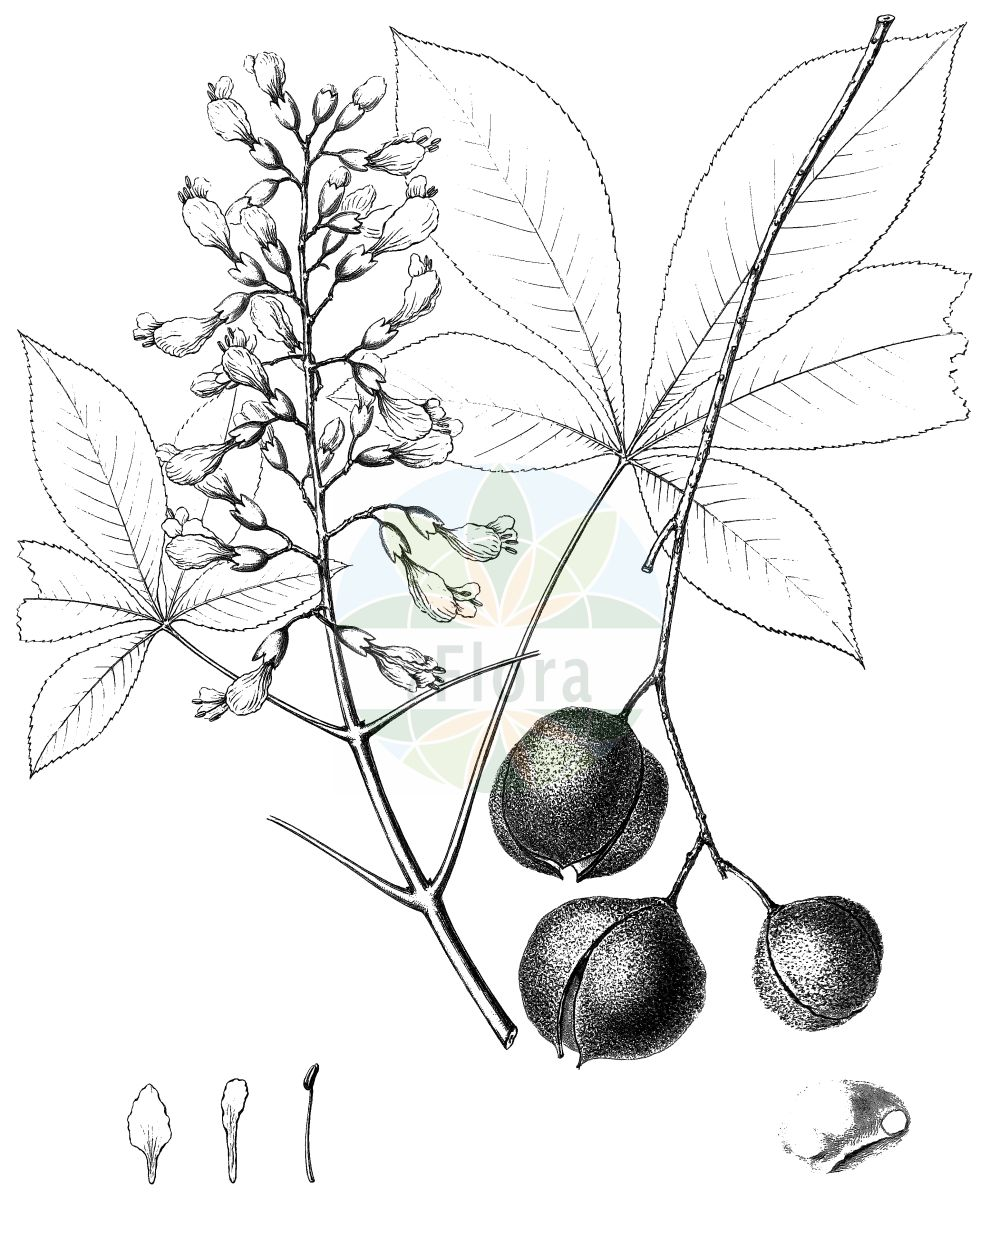 Historische Abbildung von Aesculus pavia. Das Bild zeigt Blatt, Bluete, Frucht und Same. ---- Historical Drawing of Aesculus pavia.The image is showing leaf, flower, fruit and seed.(Aesculus pavia,Aesculus pavia,Aesculus,Rosskastanie,Horse-chestnut,Sapindaceae,Seifenbaumgewaechse,Soapberry family,Blatt,Bluete,Frucht,Same,leaf,flower,fruit,seed,Sargent (1898-1902))